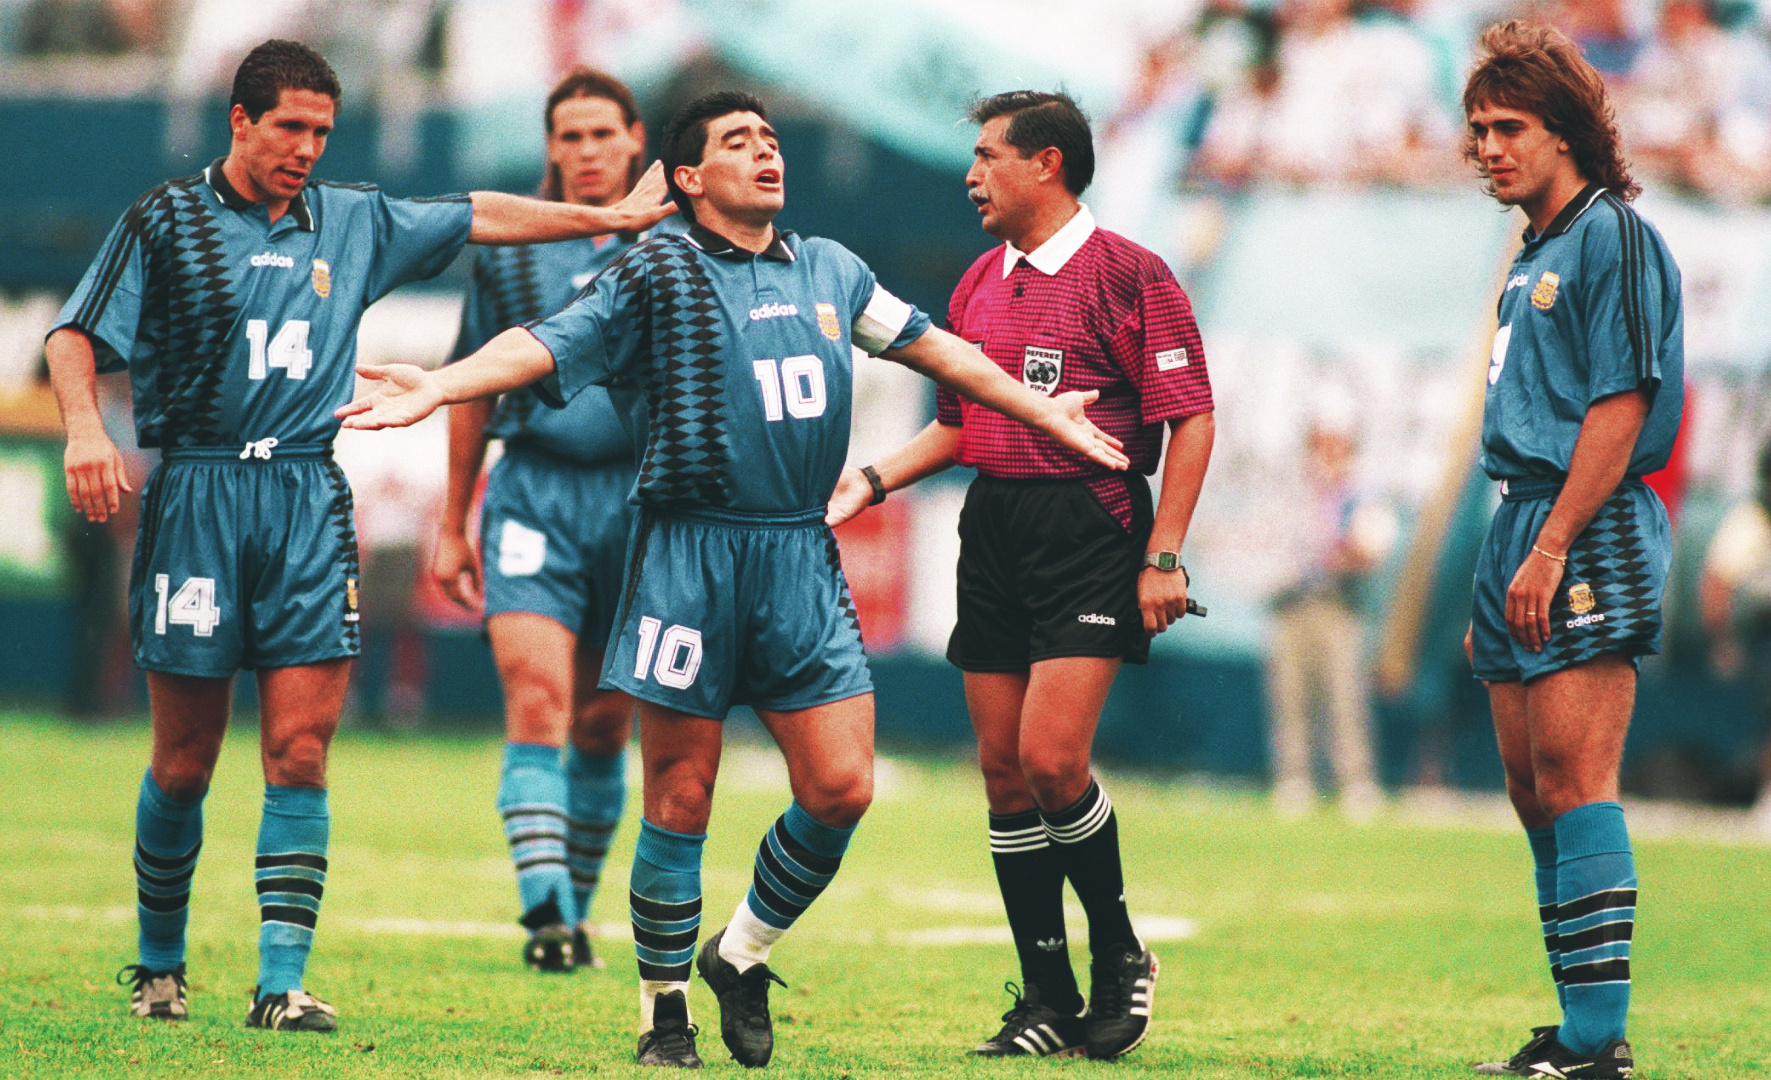 Diego Maradona at World Cup 1994: the fallen angel